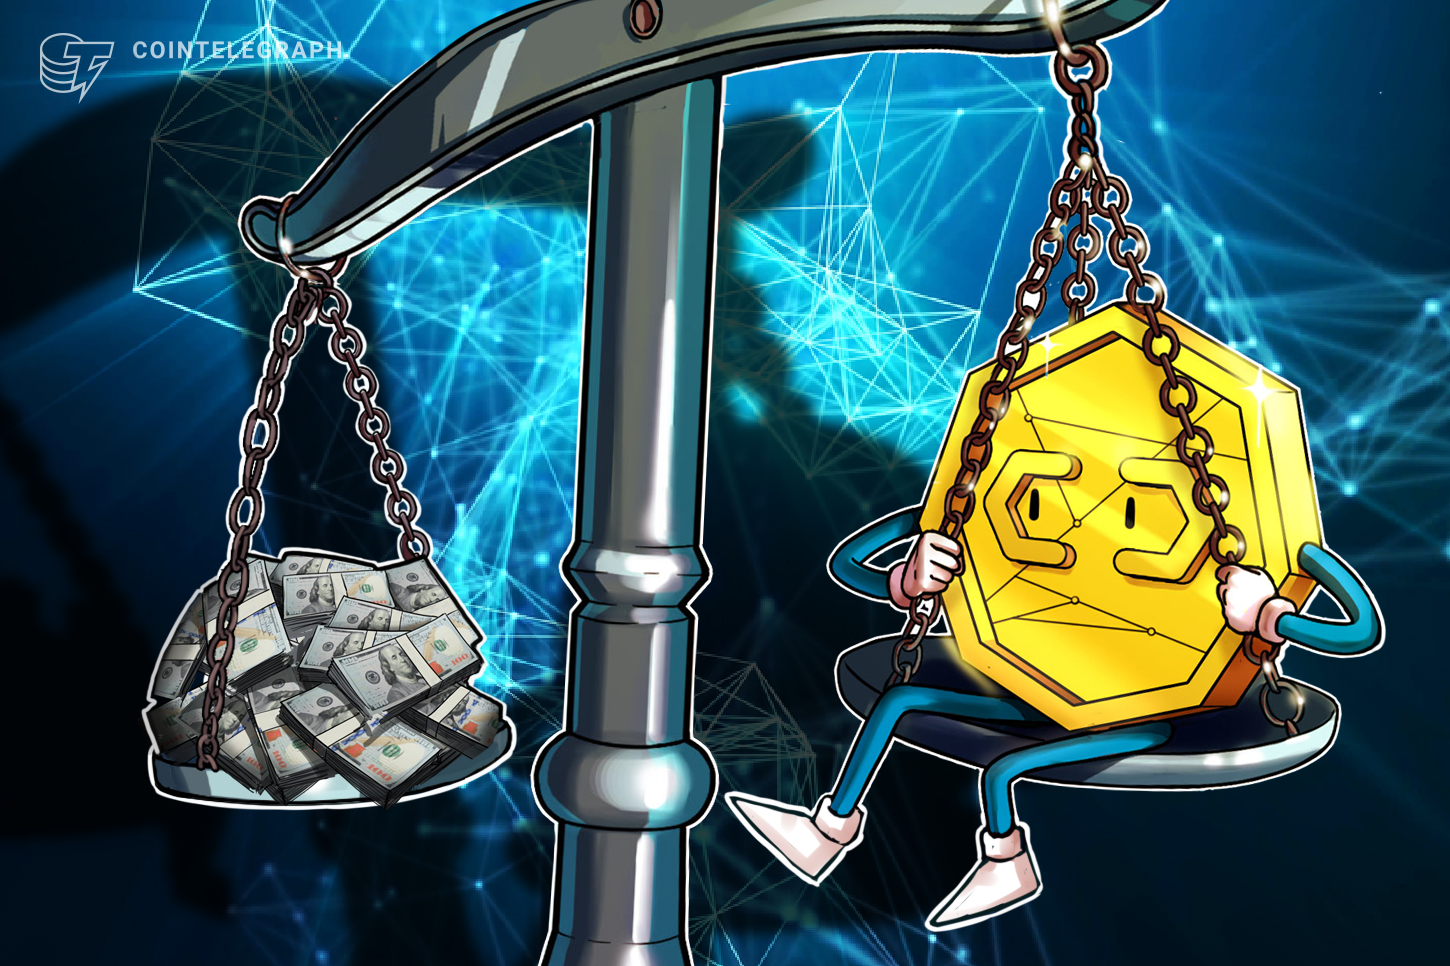 Second Stimulus Check Coming, But Will Americans Use it on Crypto?